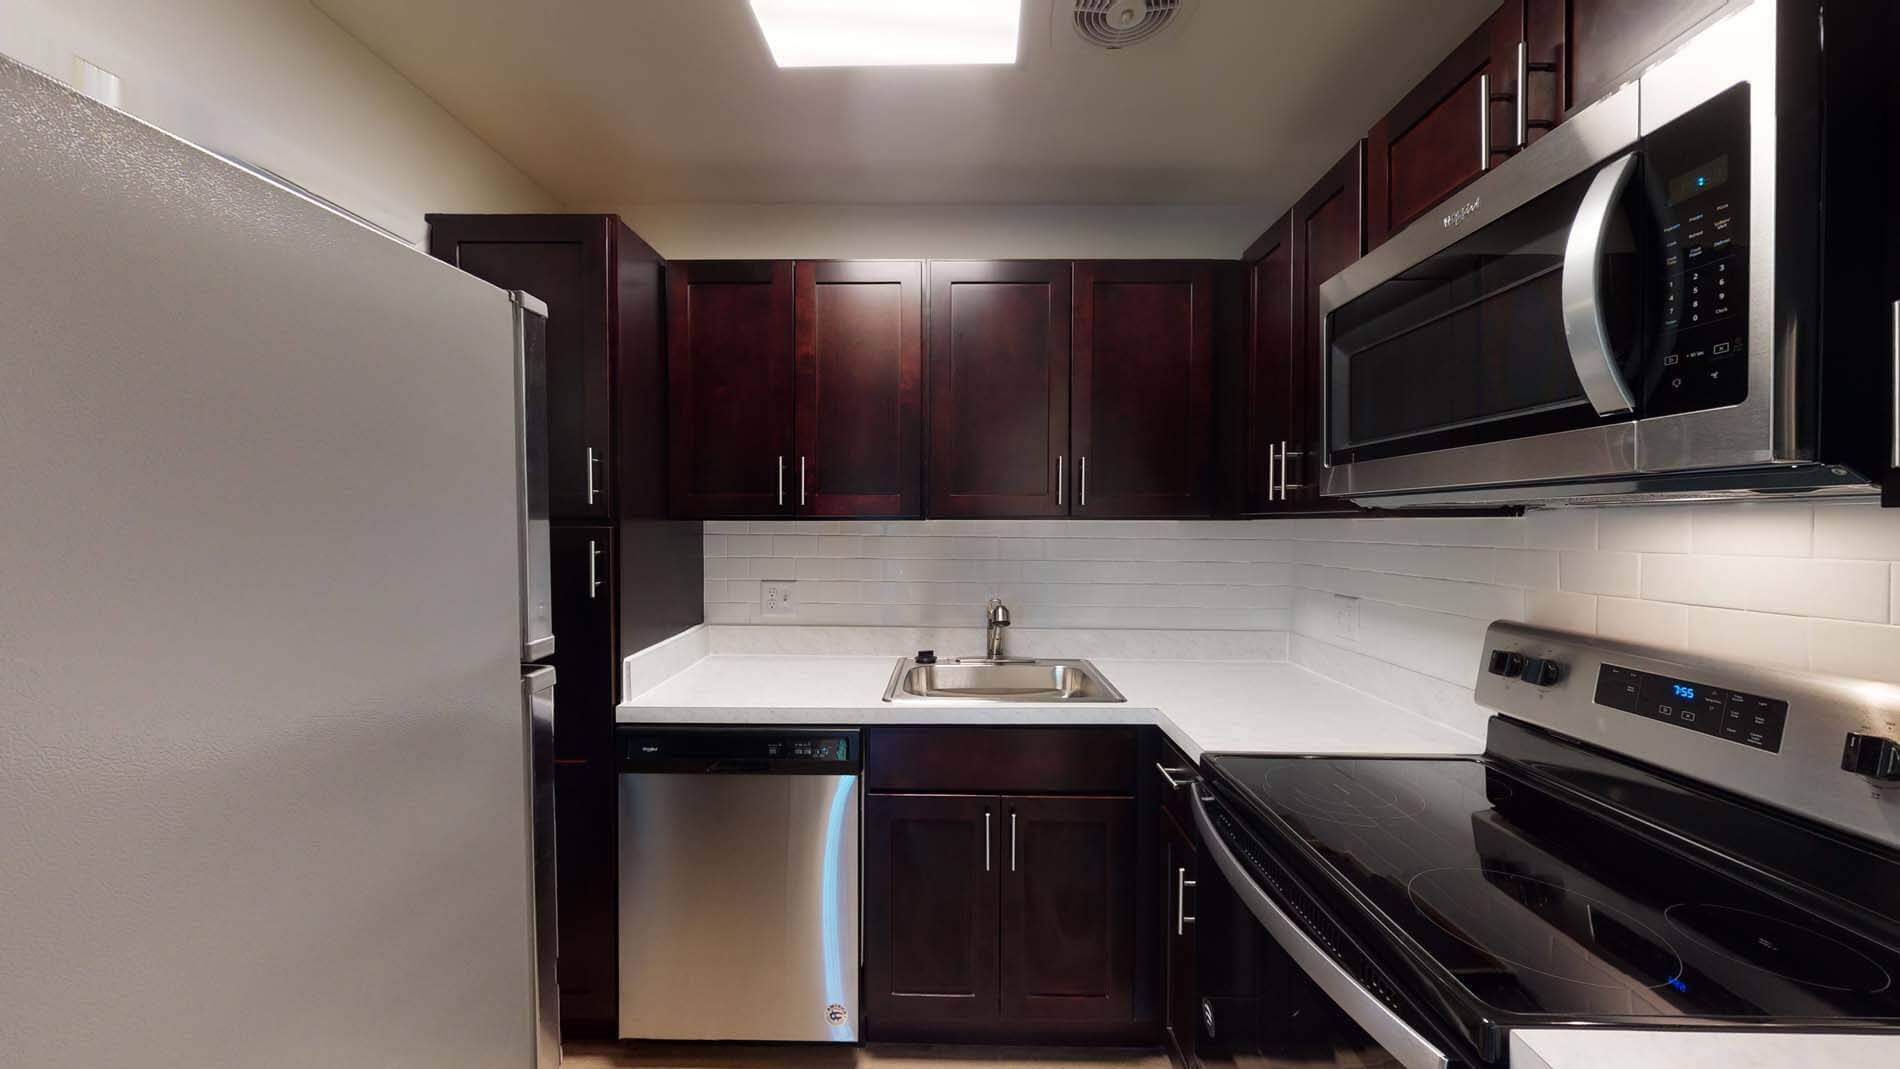 2 Beds, 1 Bath apartment in Norwood for $1,768